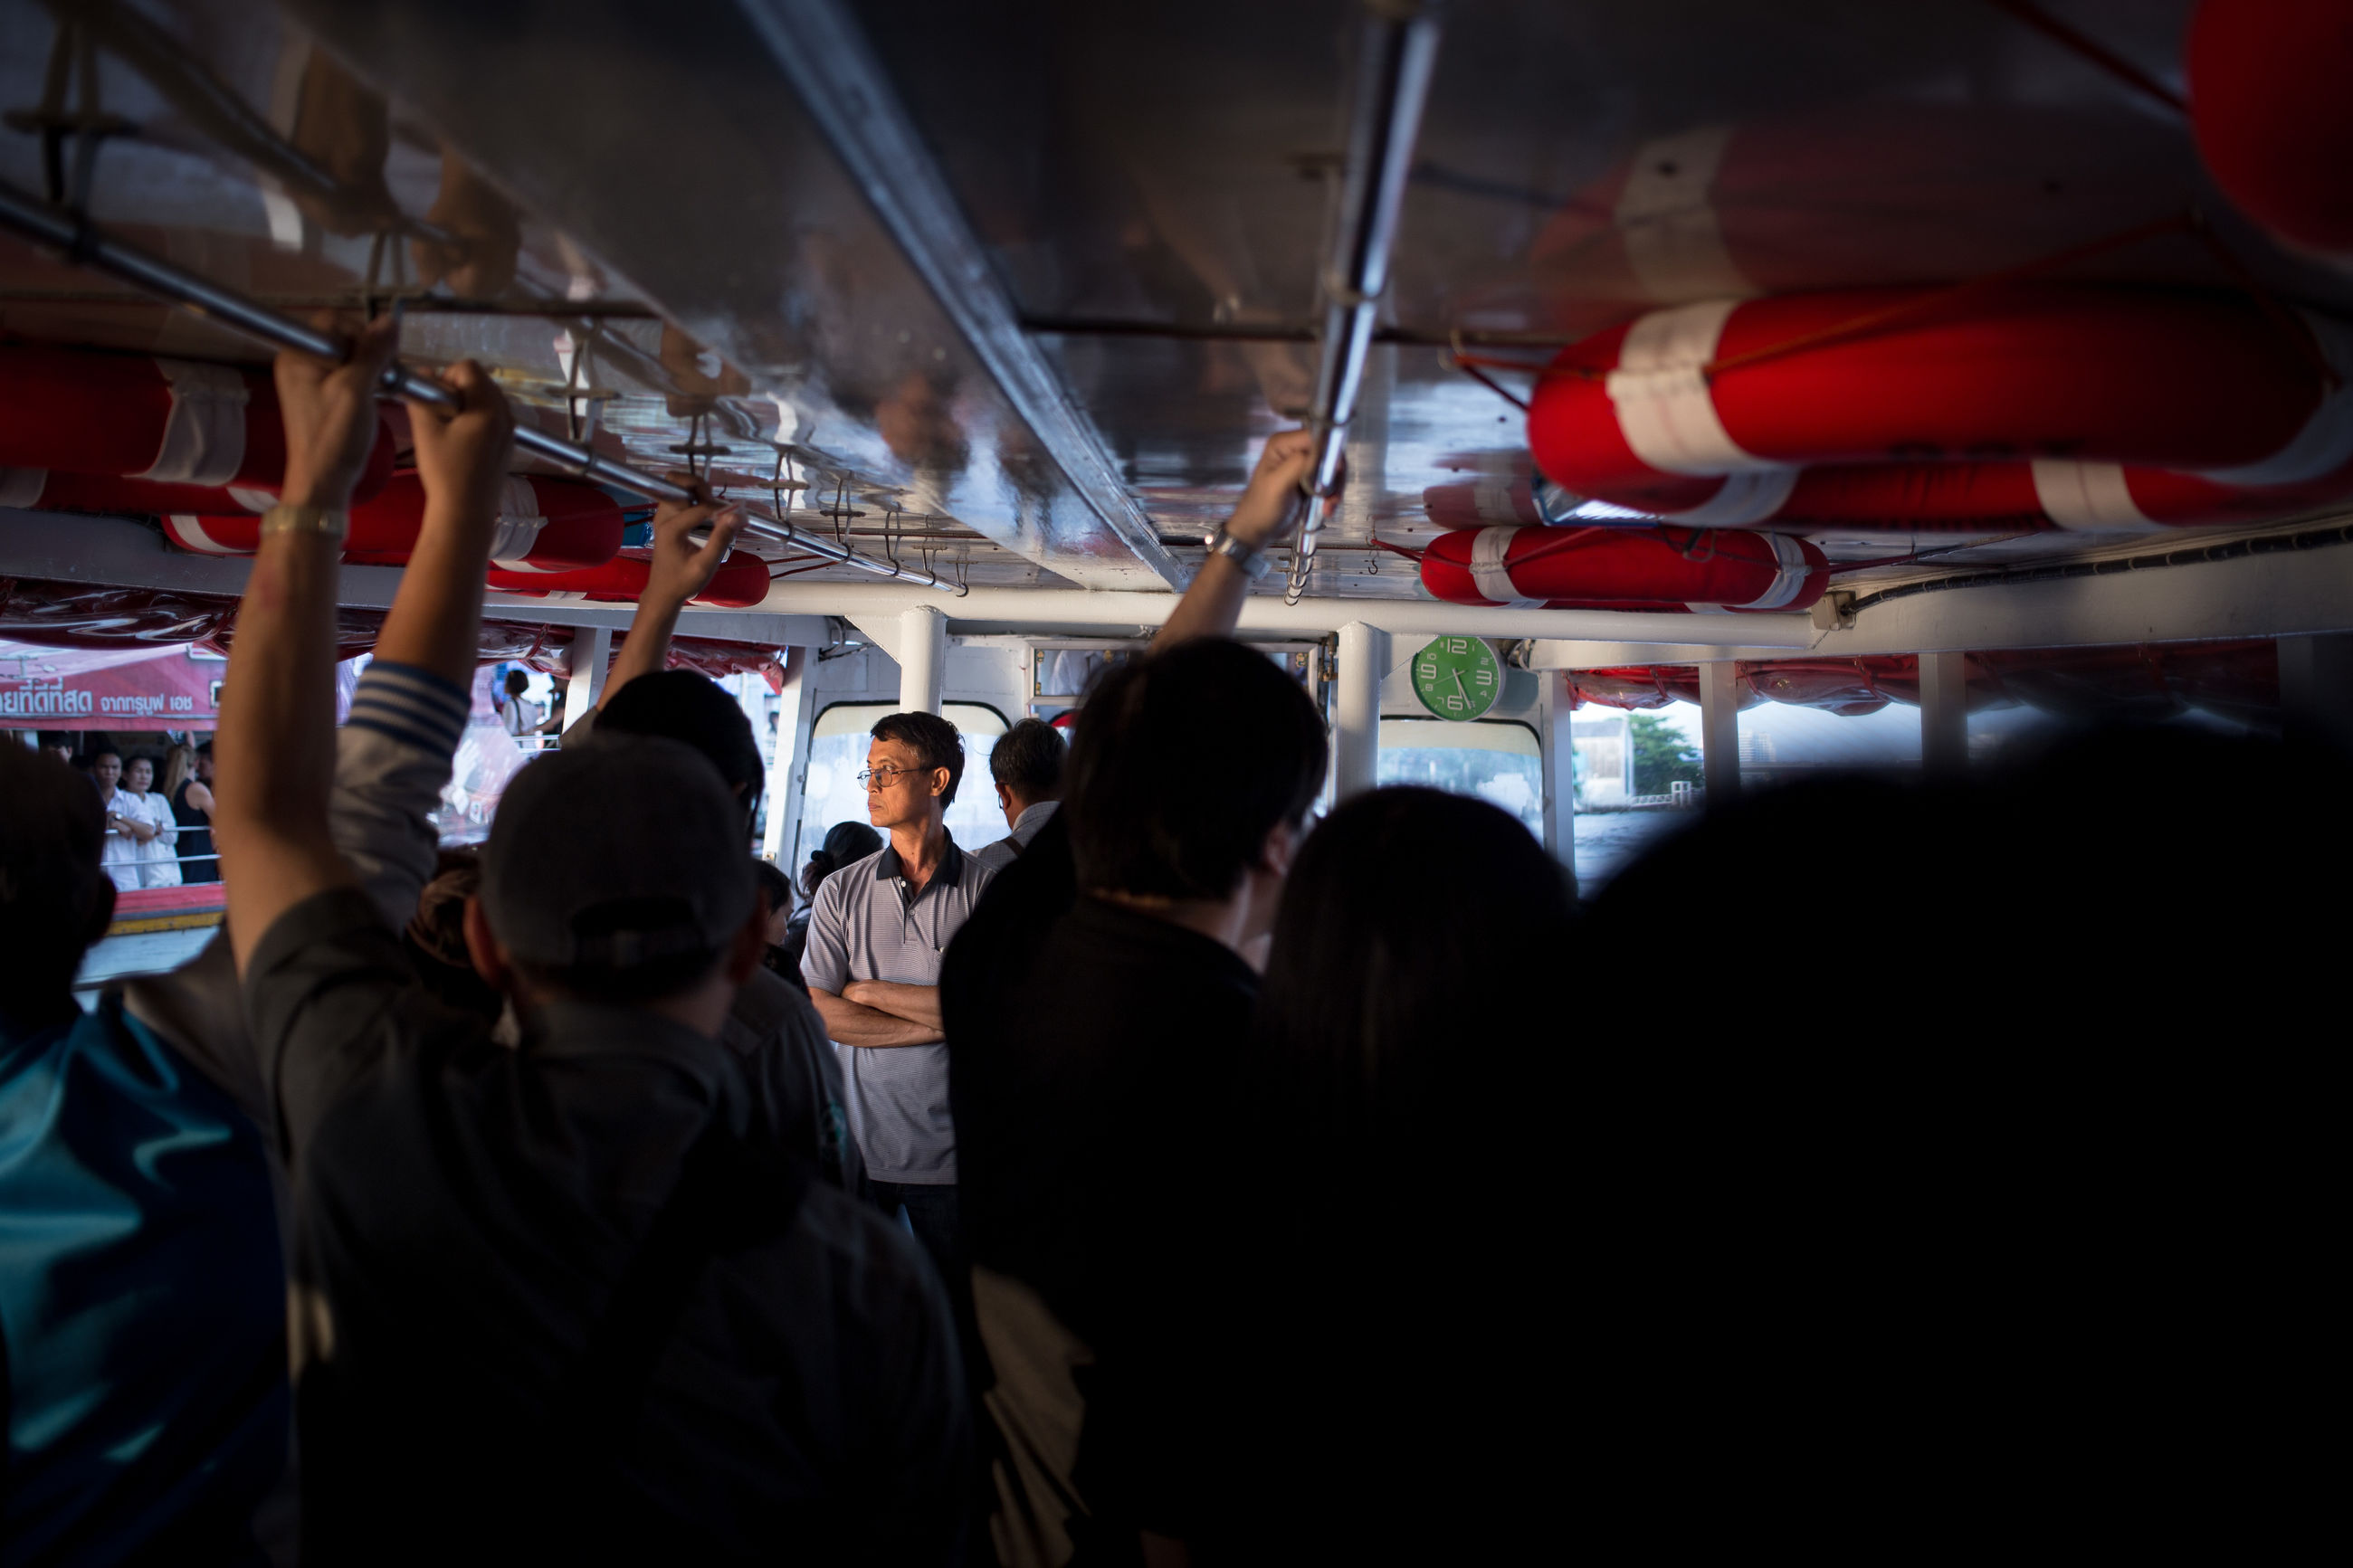 vehicle interior, transportation, mode of transport, real people, large group of people, public transportation, men, journey, women, indoors, day